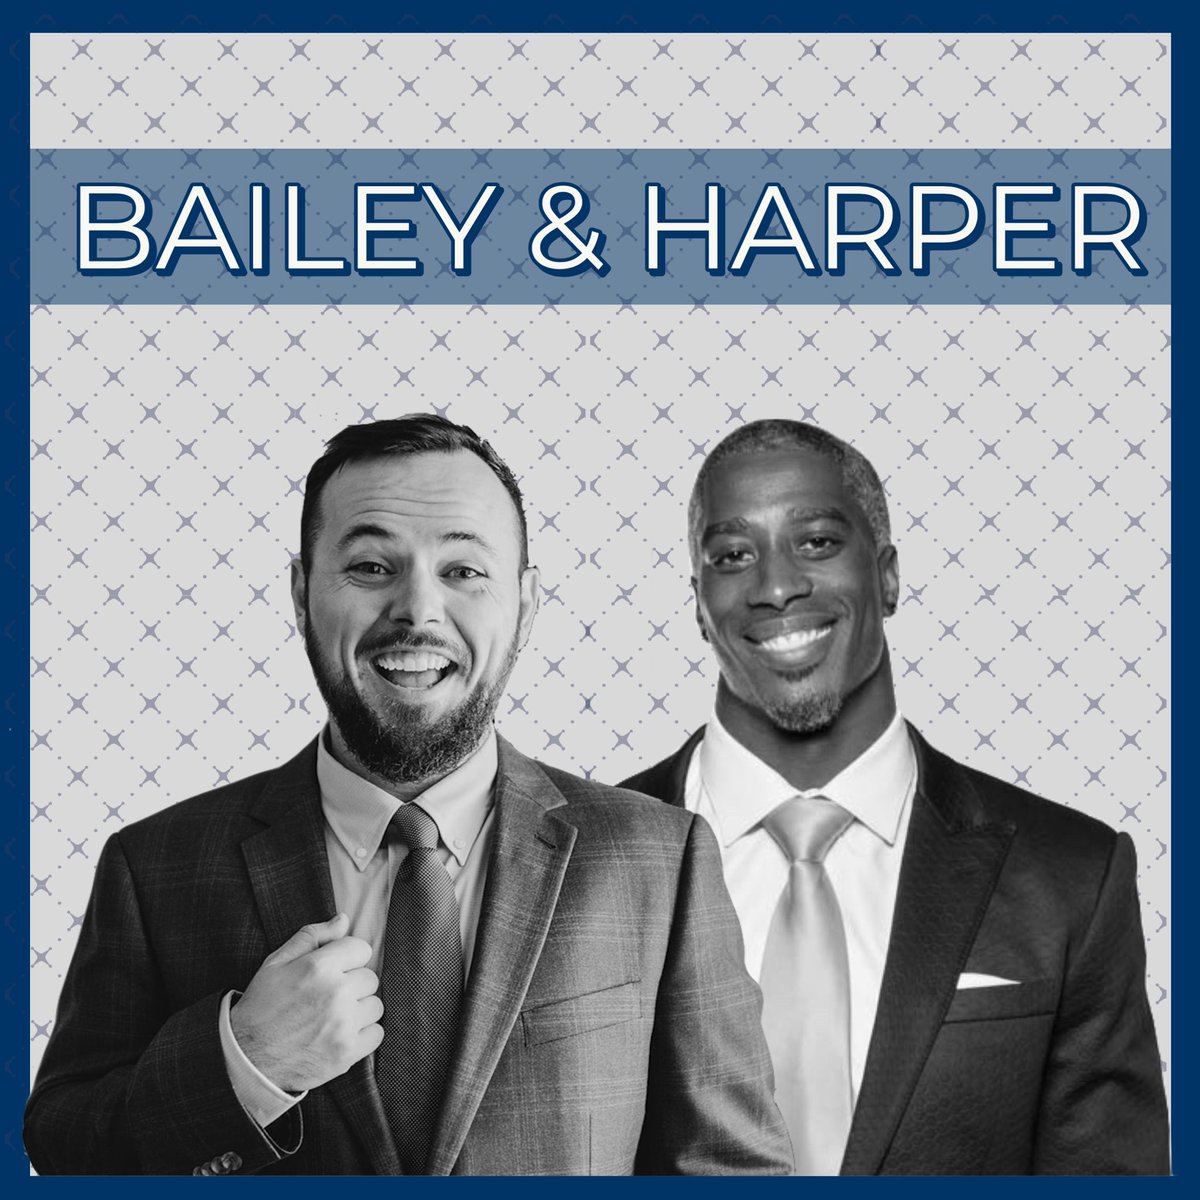 """Ep 8 - """"A Little Bit of Everything""""  Not to get all sentimental, but @Harp41 is my guy. Eternally optimistic and always ready to give me a pep talk or entertain a wild idea. Find you a buddy like Roman Harper.   Spotify:  https://t.co/zL08S6GAY4  iTunes:  https://t.co/lGcGkQjh8w https://t.co/lsra3D95Kq"""